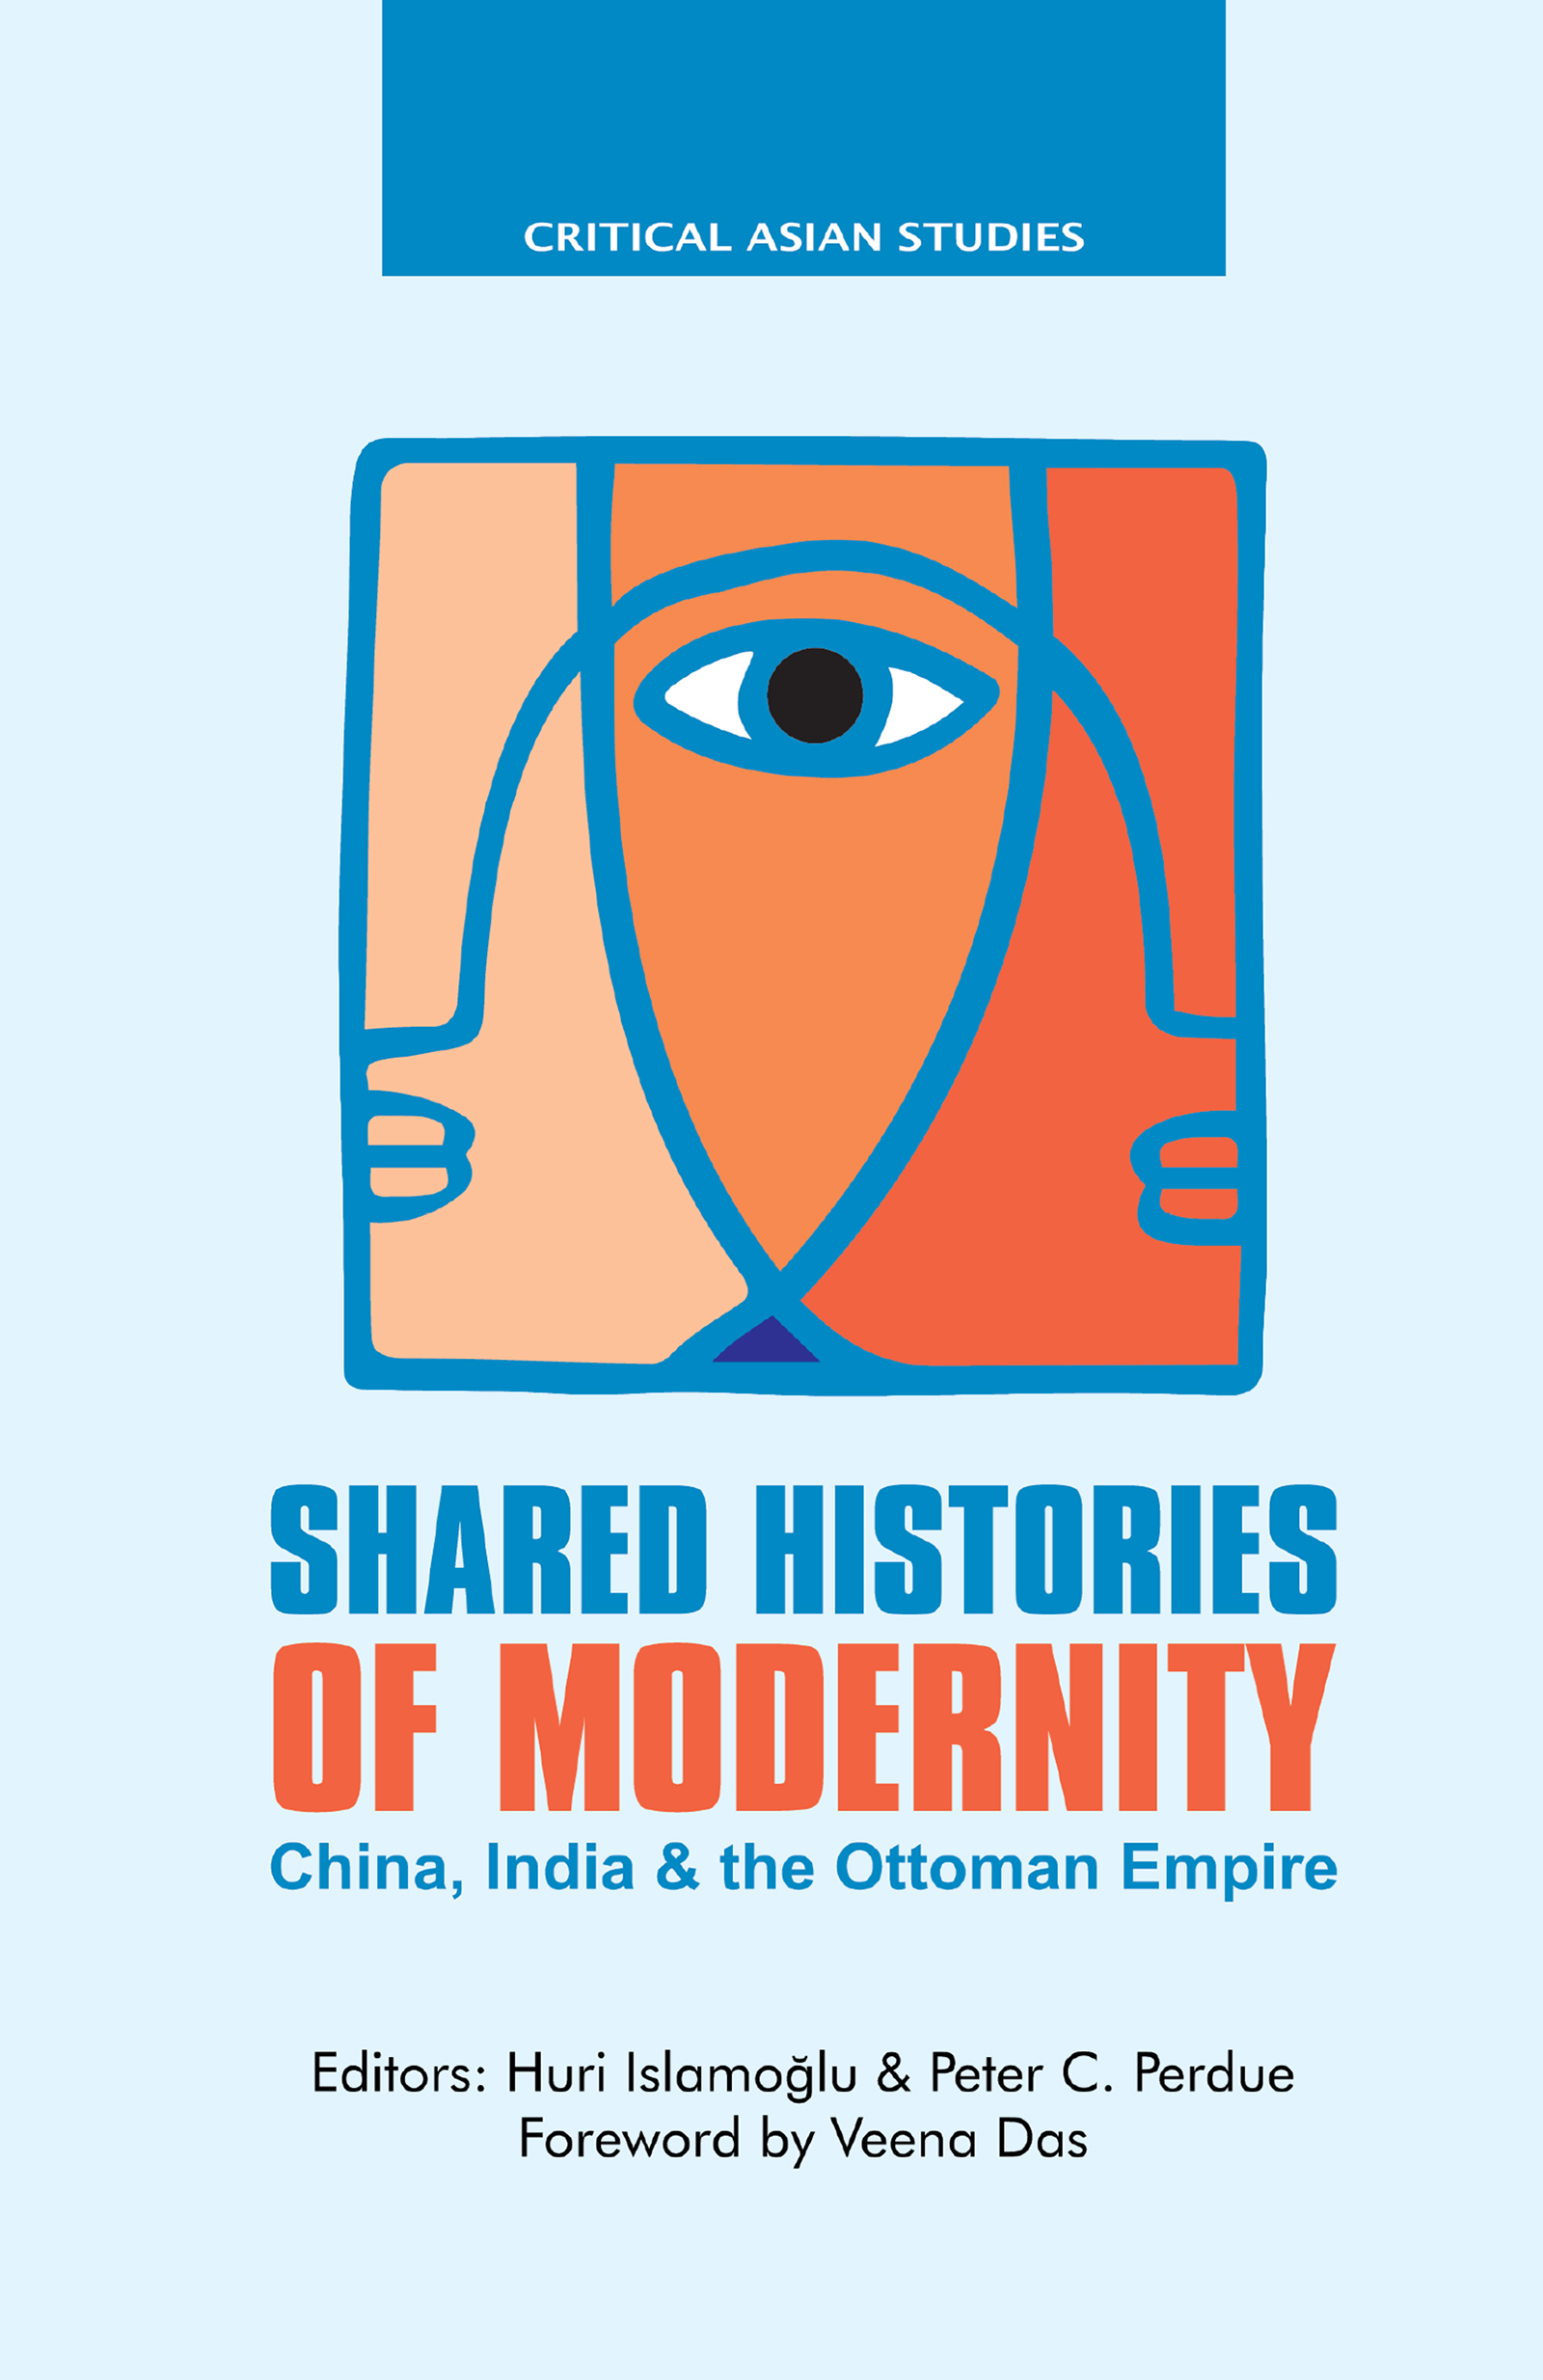 Shared Histories of Modernity